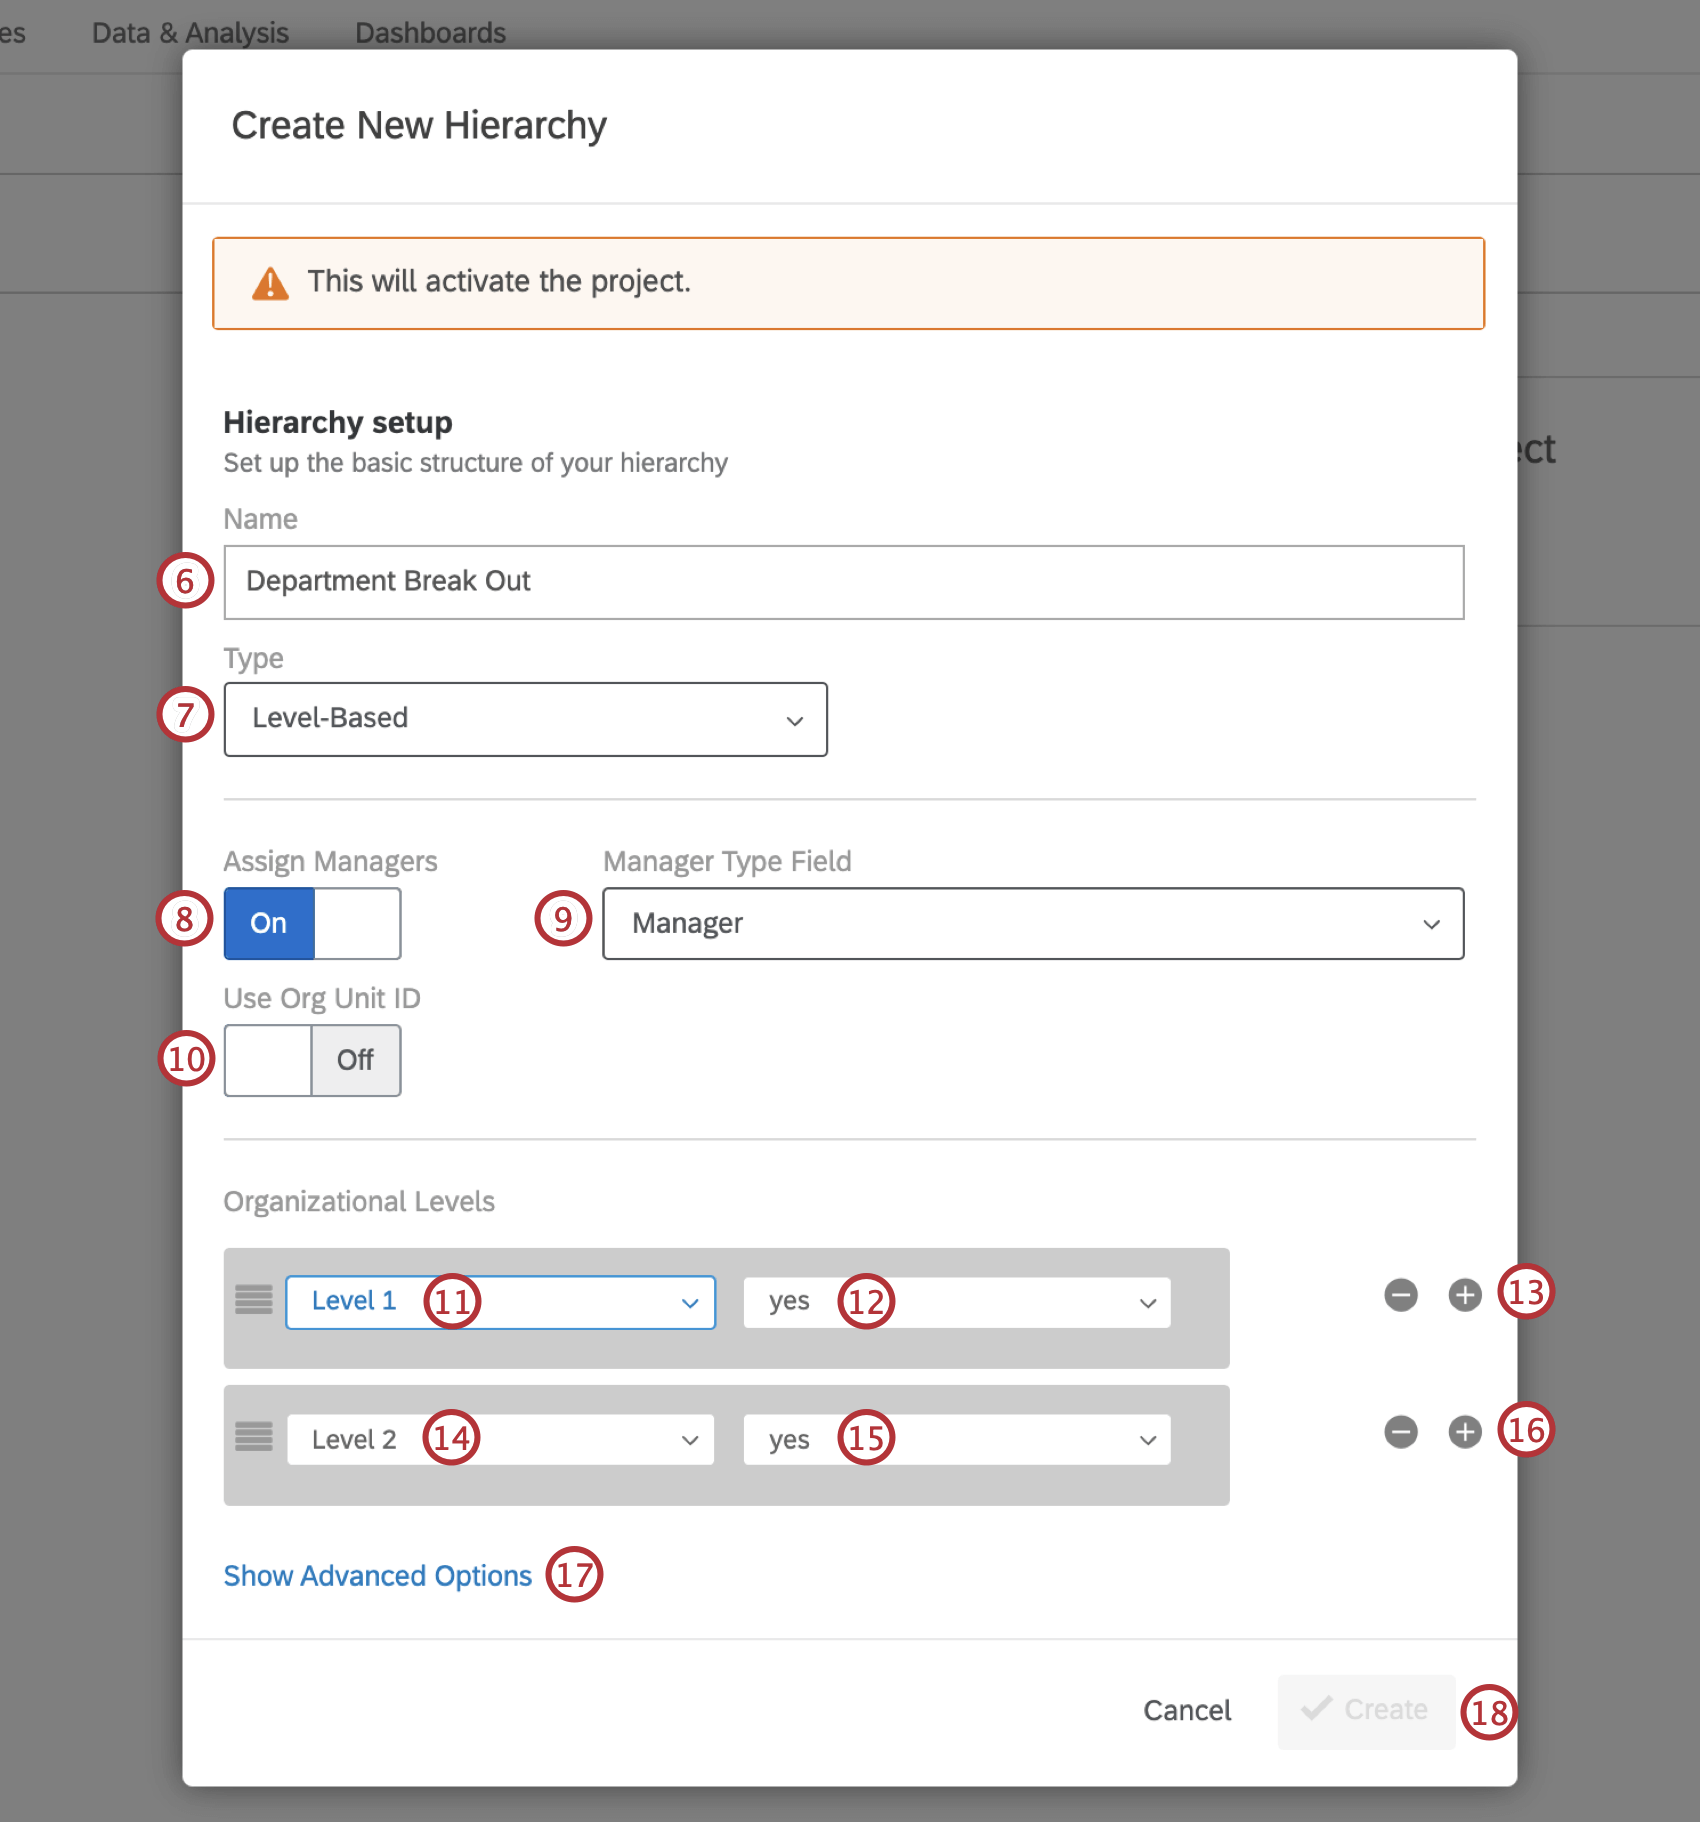 The Create New Hierarchy window